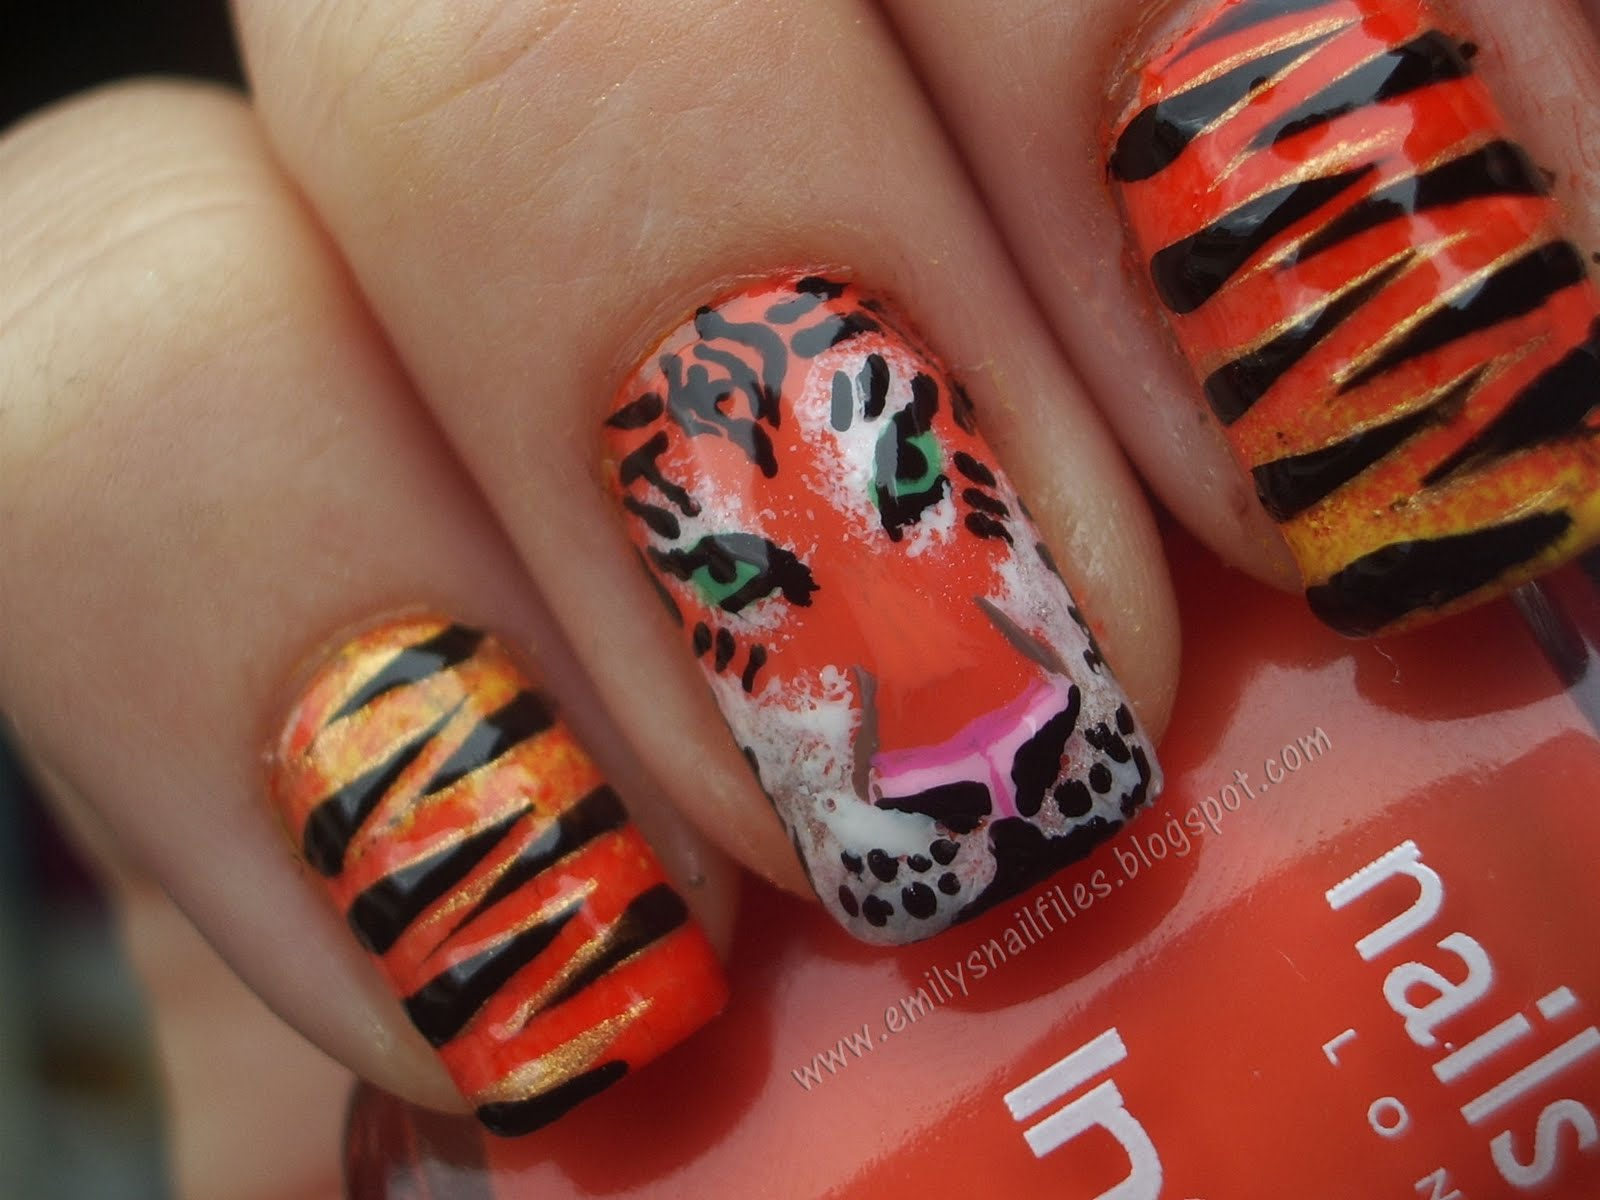 Tiger Nail Designs Pictures to Pin on Pinterest - PinsDaddy